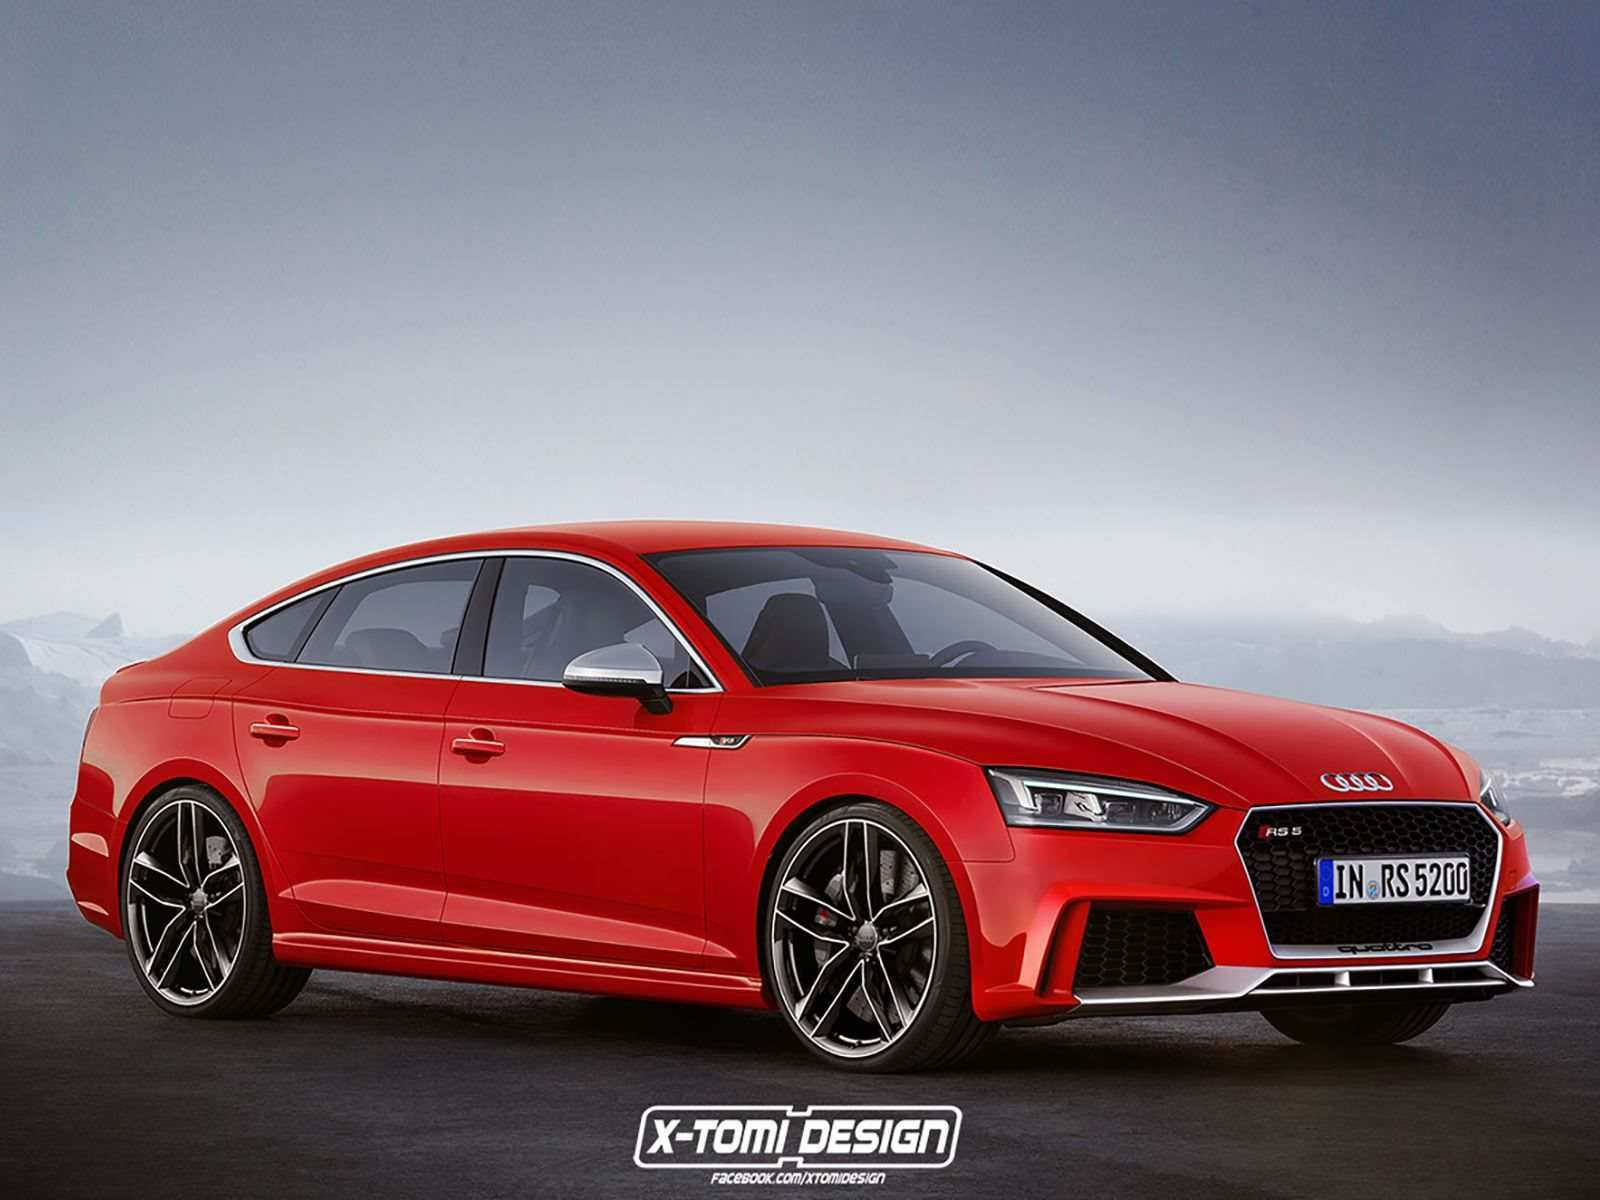 94 The Best 2020 Audi Rs5 Model